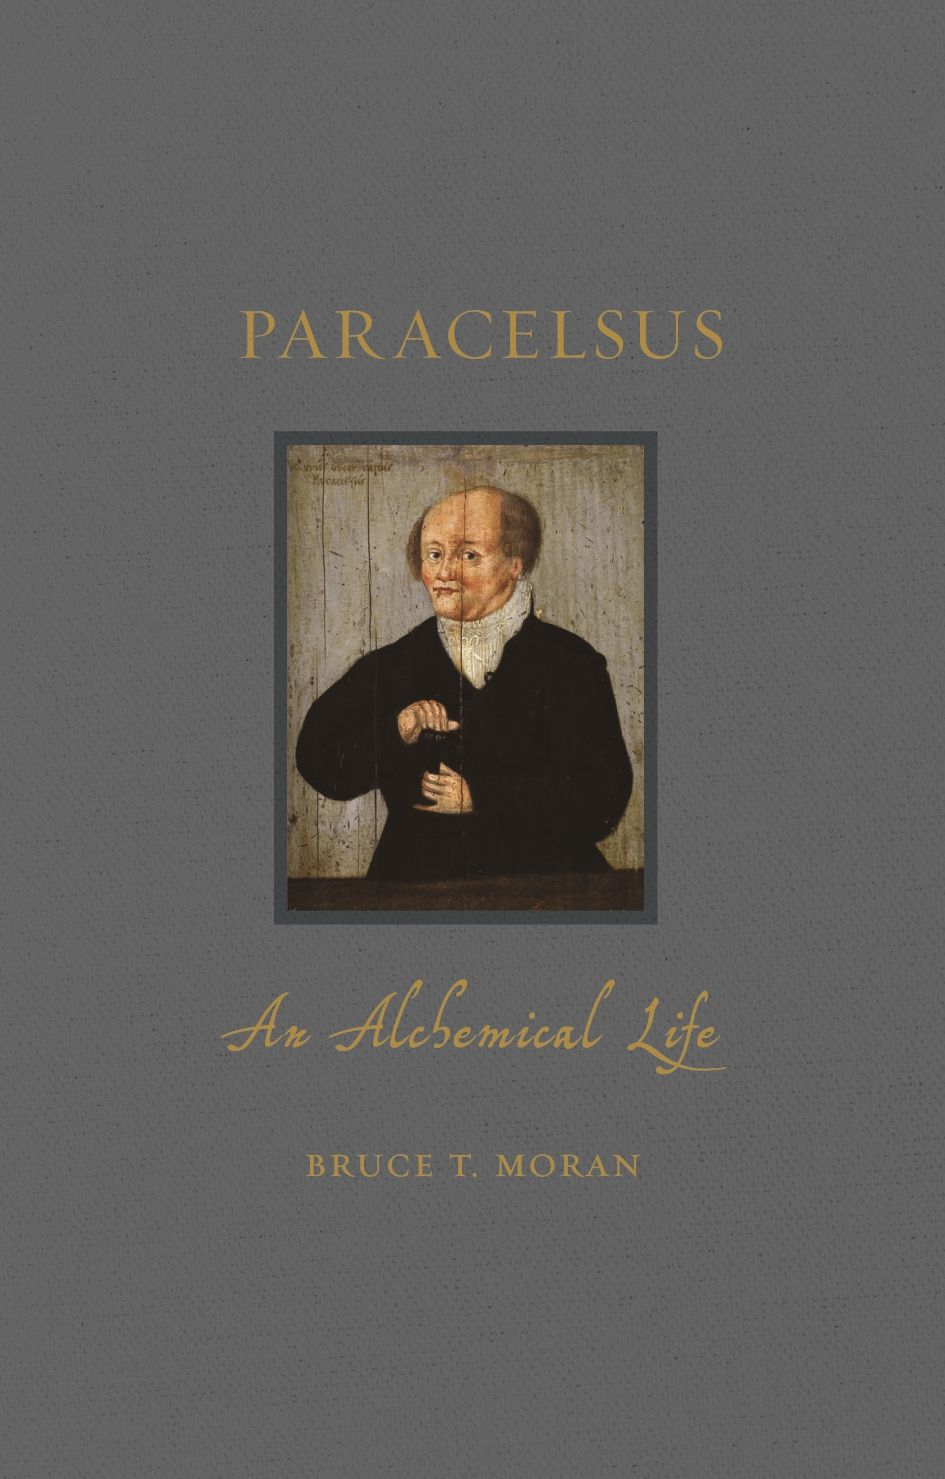 Paracelsus: An Alchemical Life